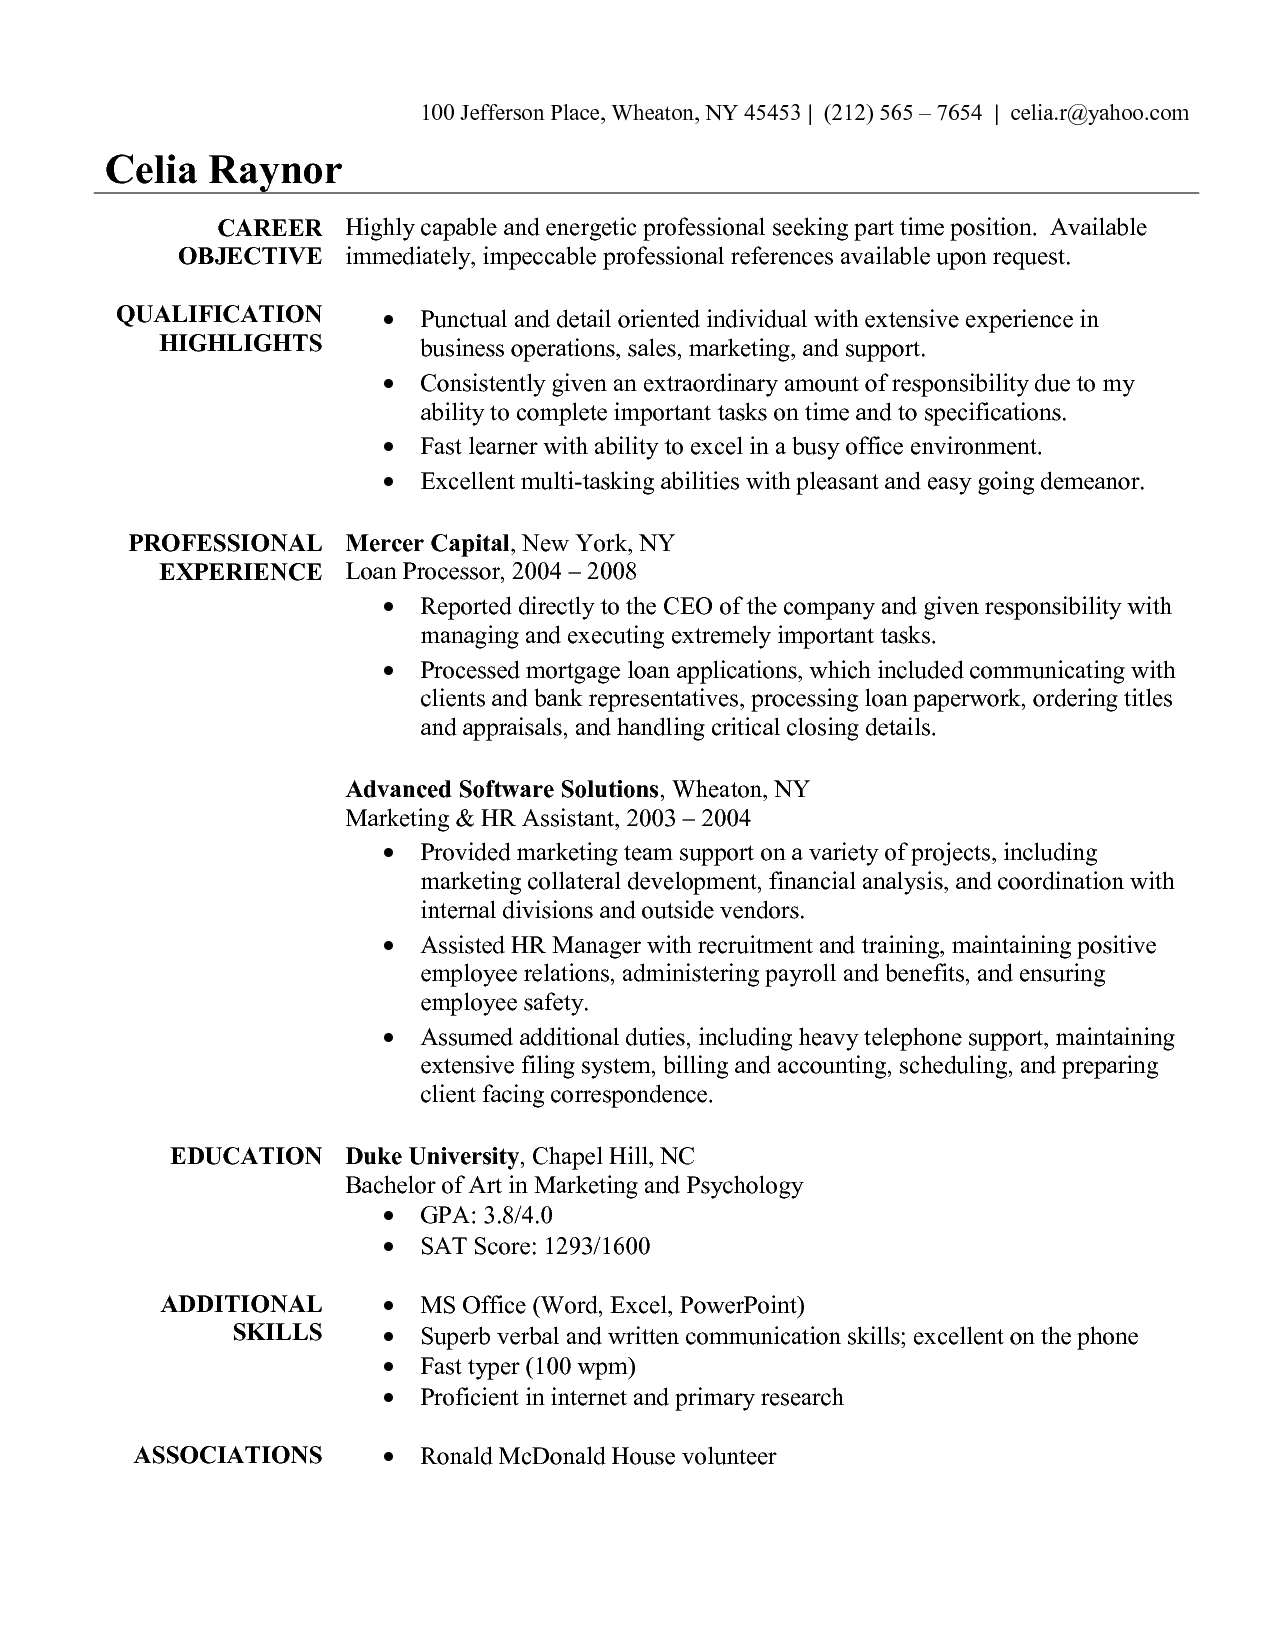 executive assistant objective samples commonpenceco - Objectives For Medical Assistant Resumes